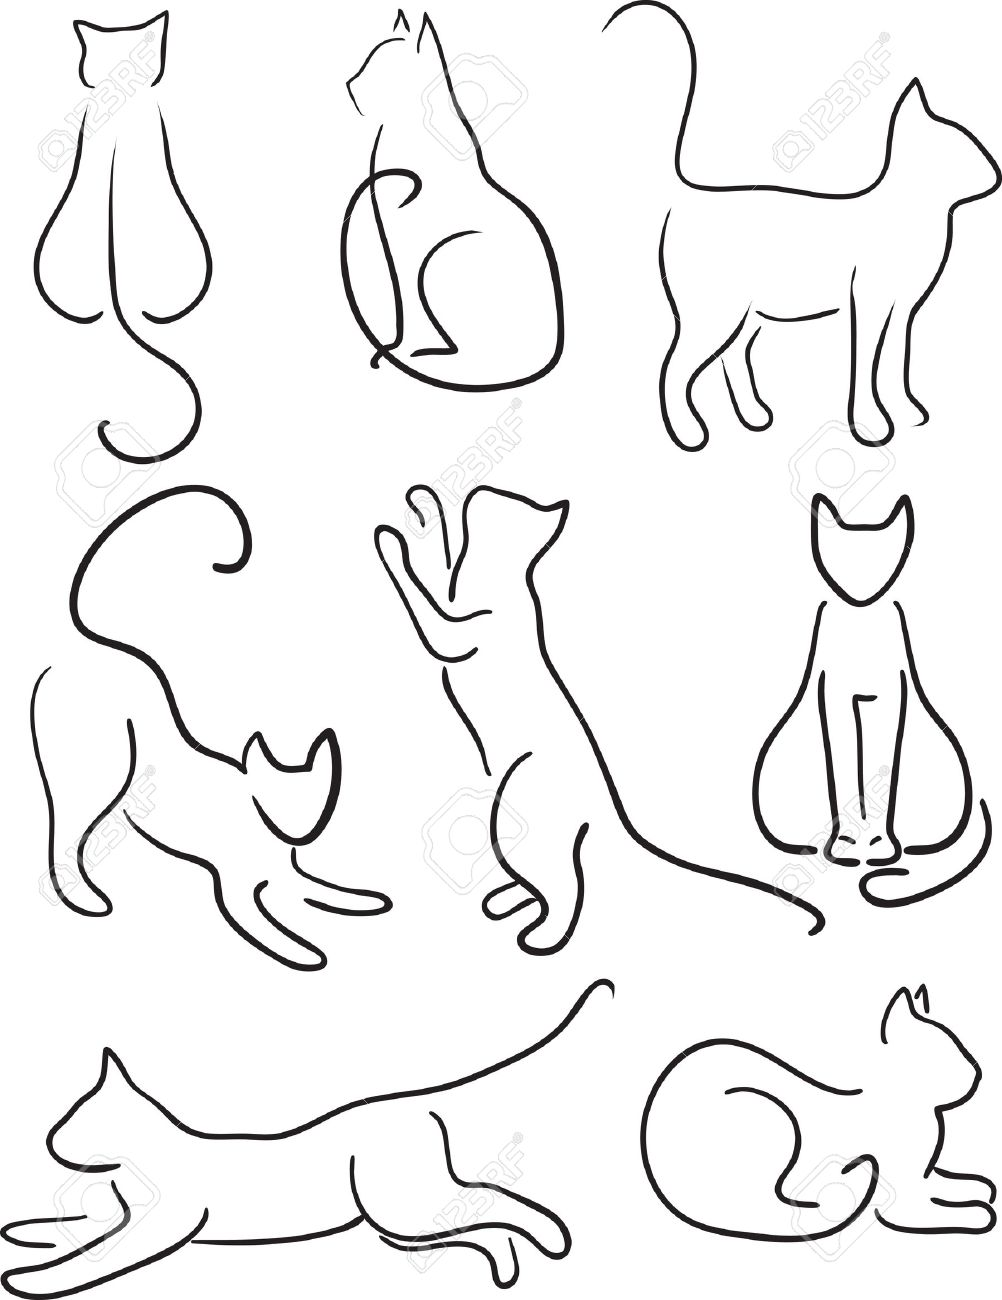 1002x1300 Silhouette Of Cats Cat Design Set Line Art Royalty Free Cliparts